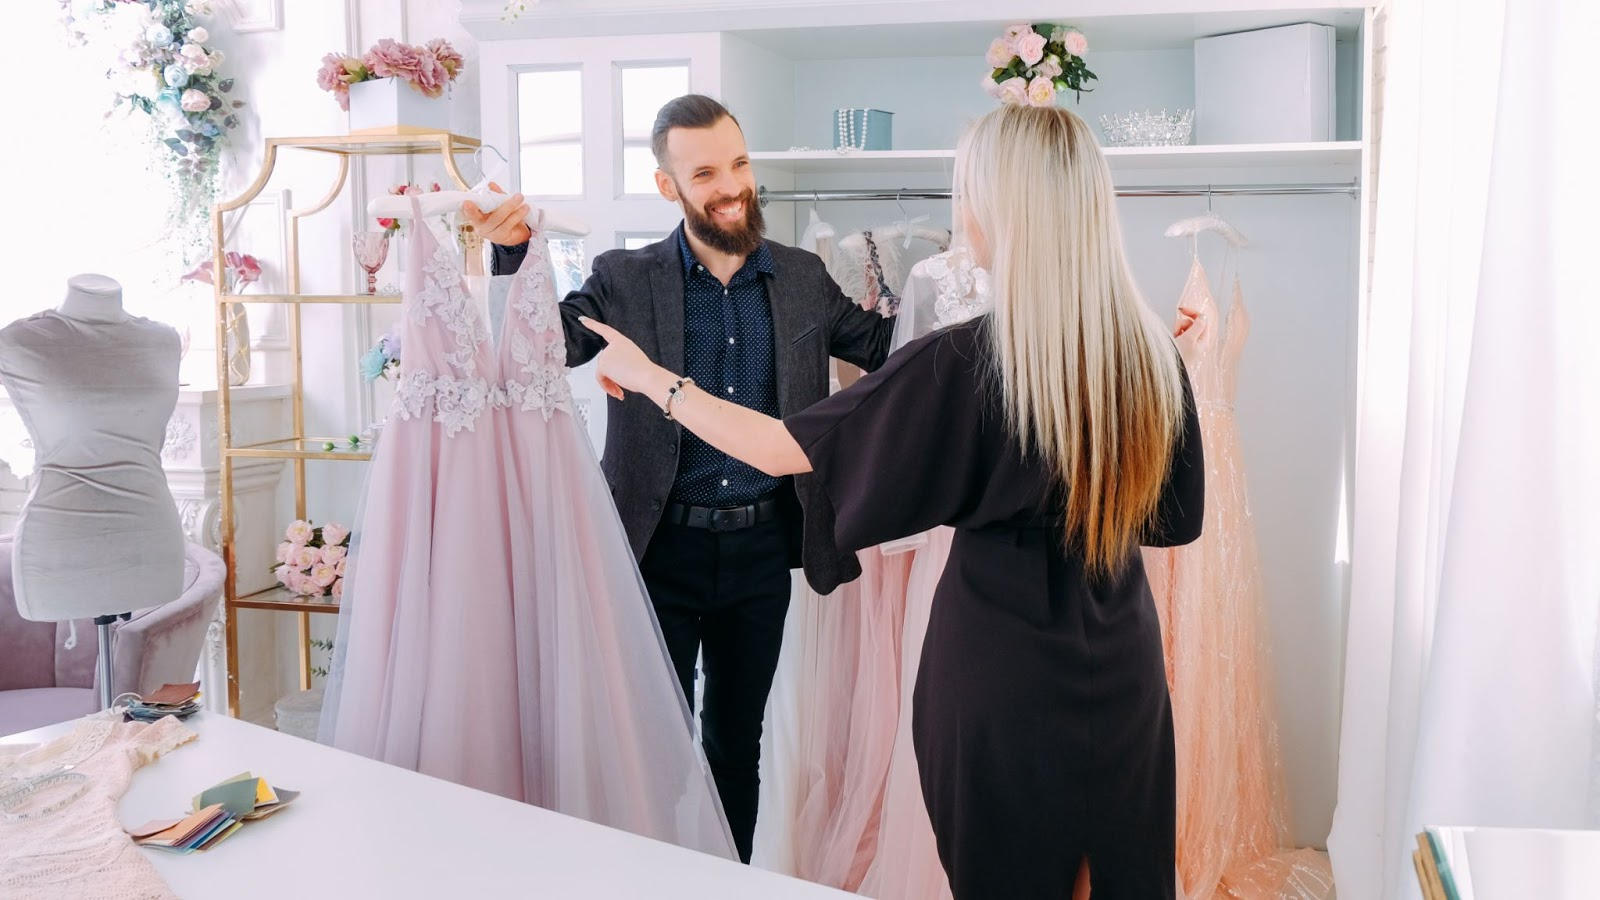 High ticket closing: Man helping woman pick out expensive gown